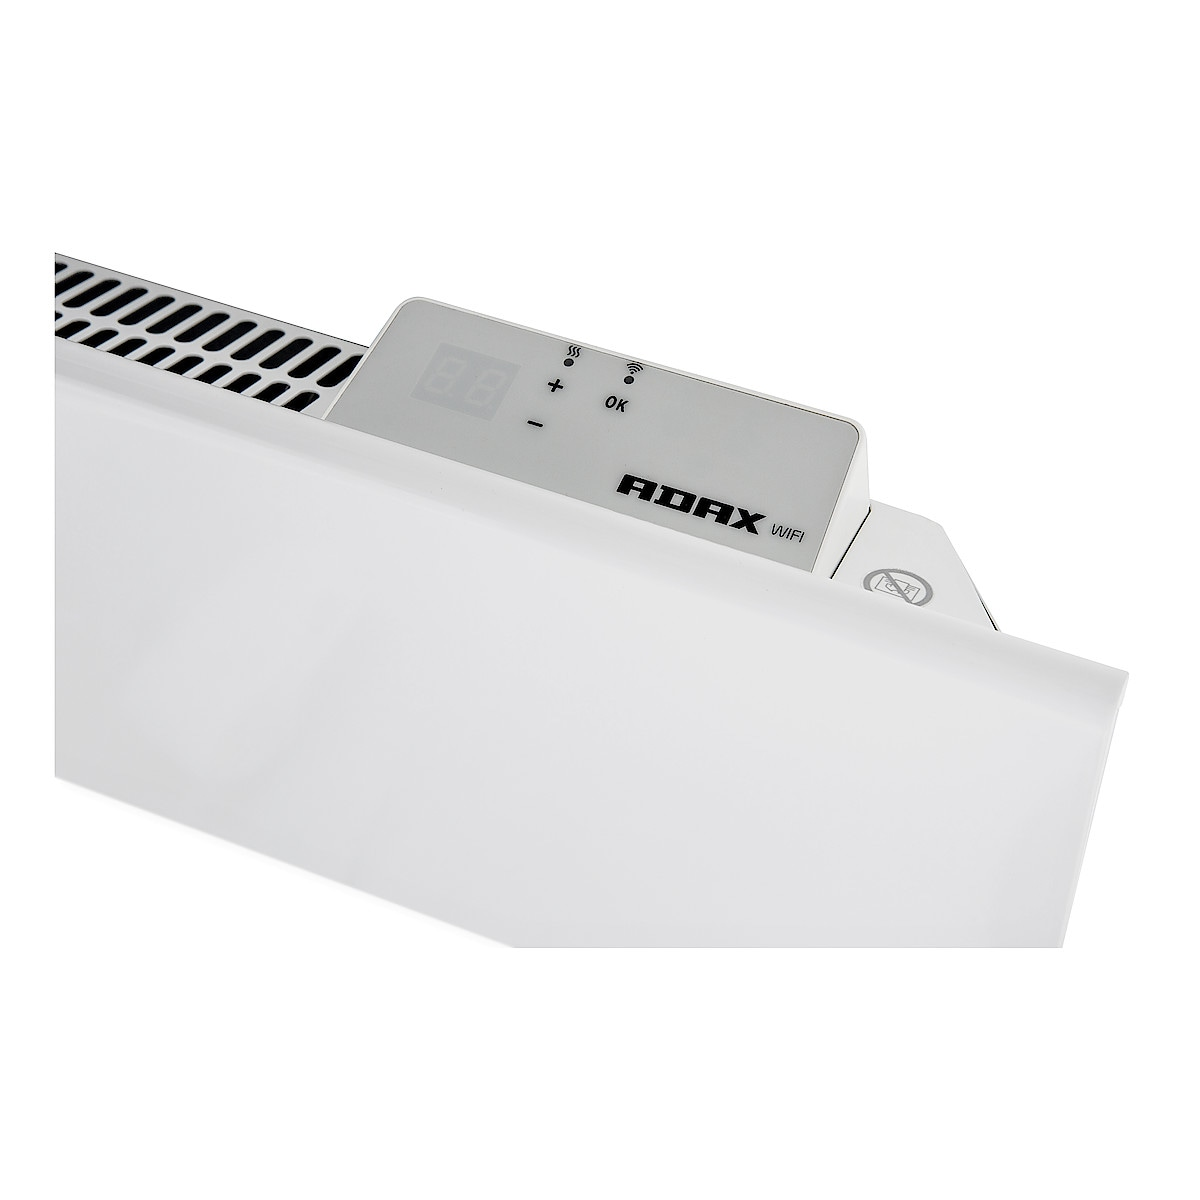 Element med WiFi 600 W 230 V Adax Neo H06KWT